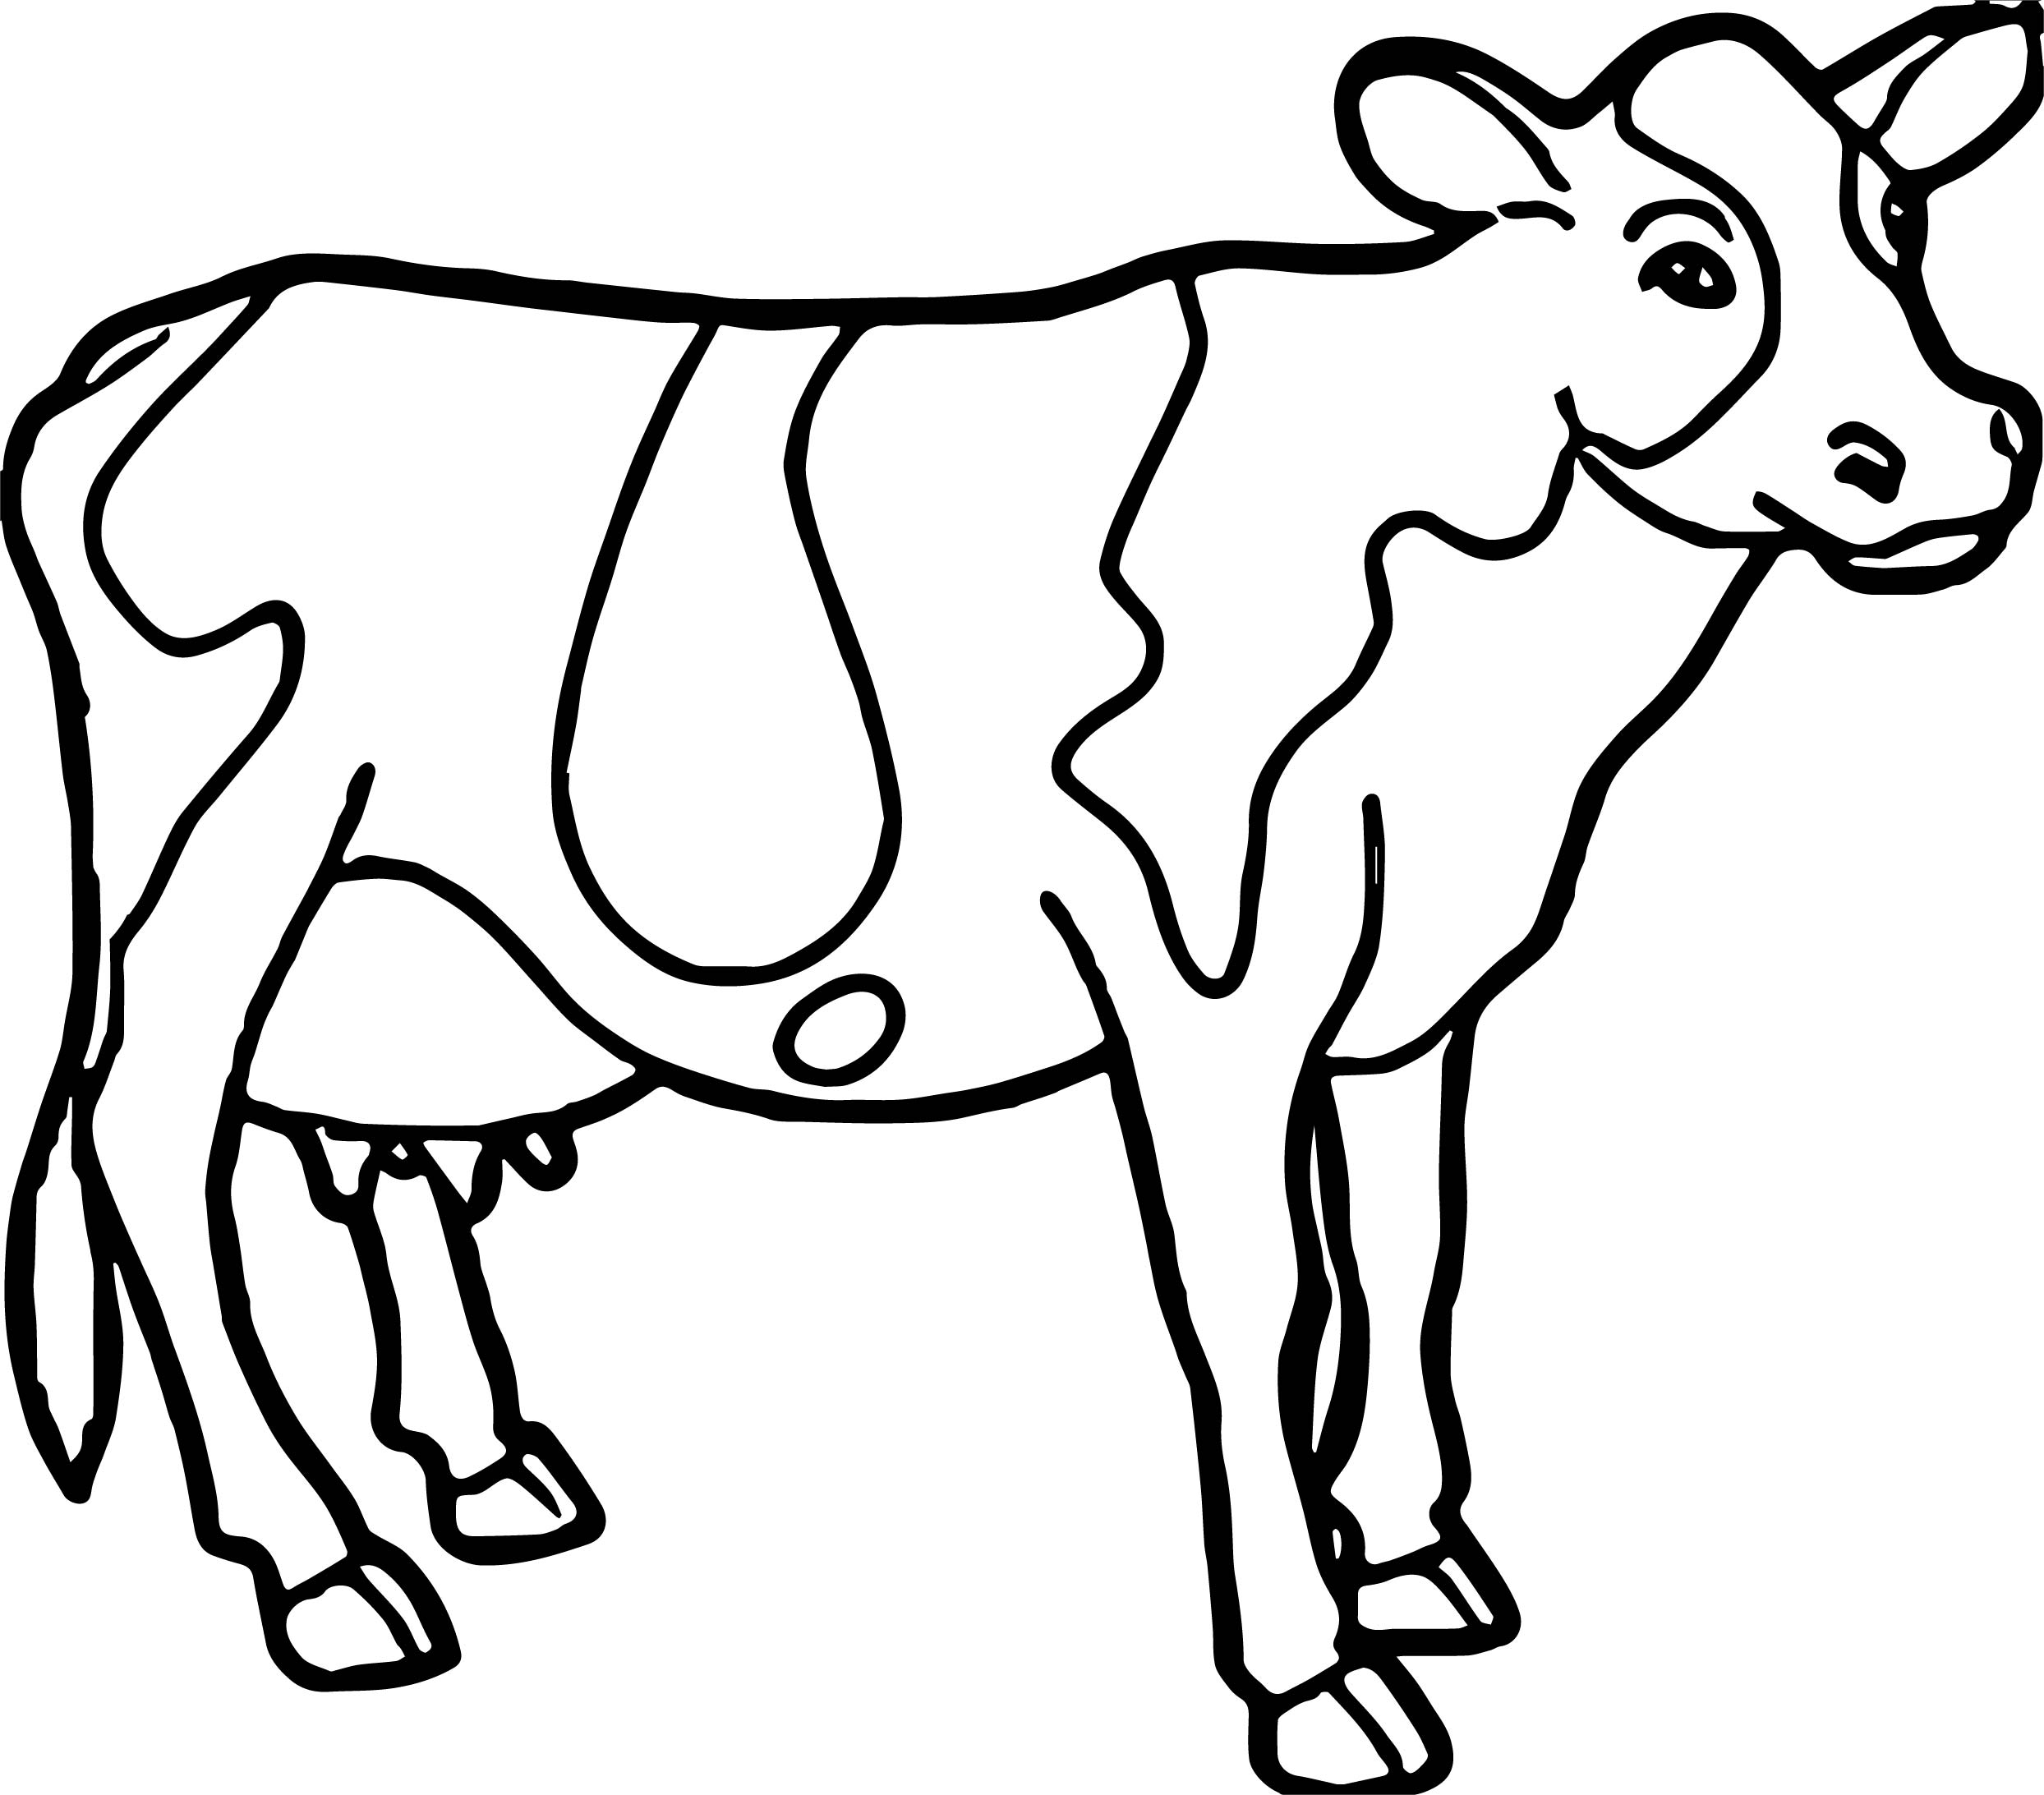 Cow farm animal coloring page Coloring book pictures of farm animals